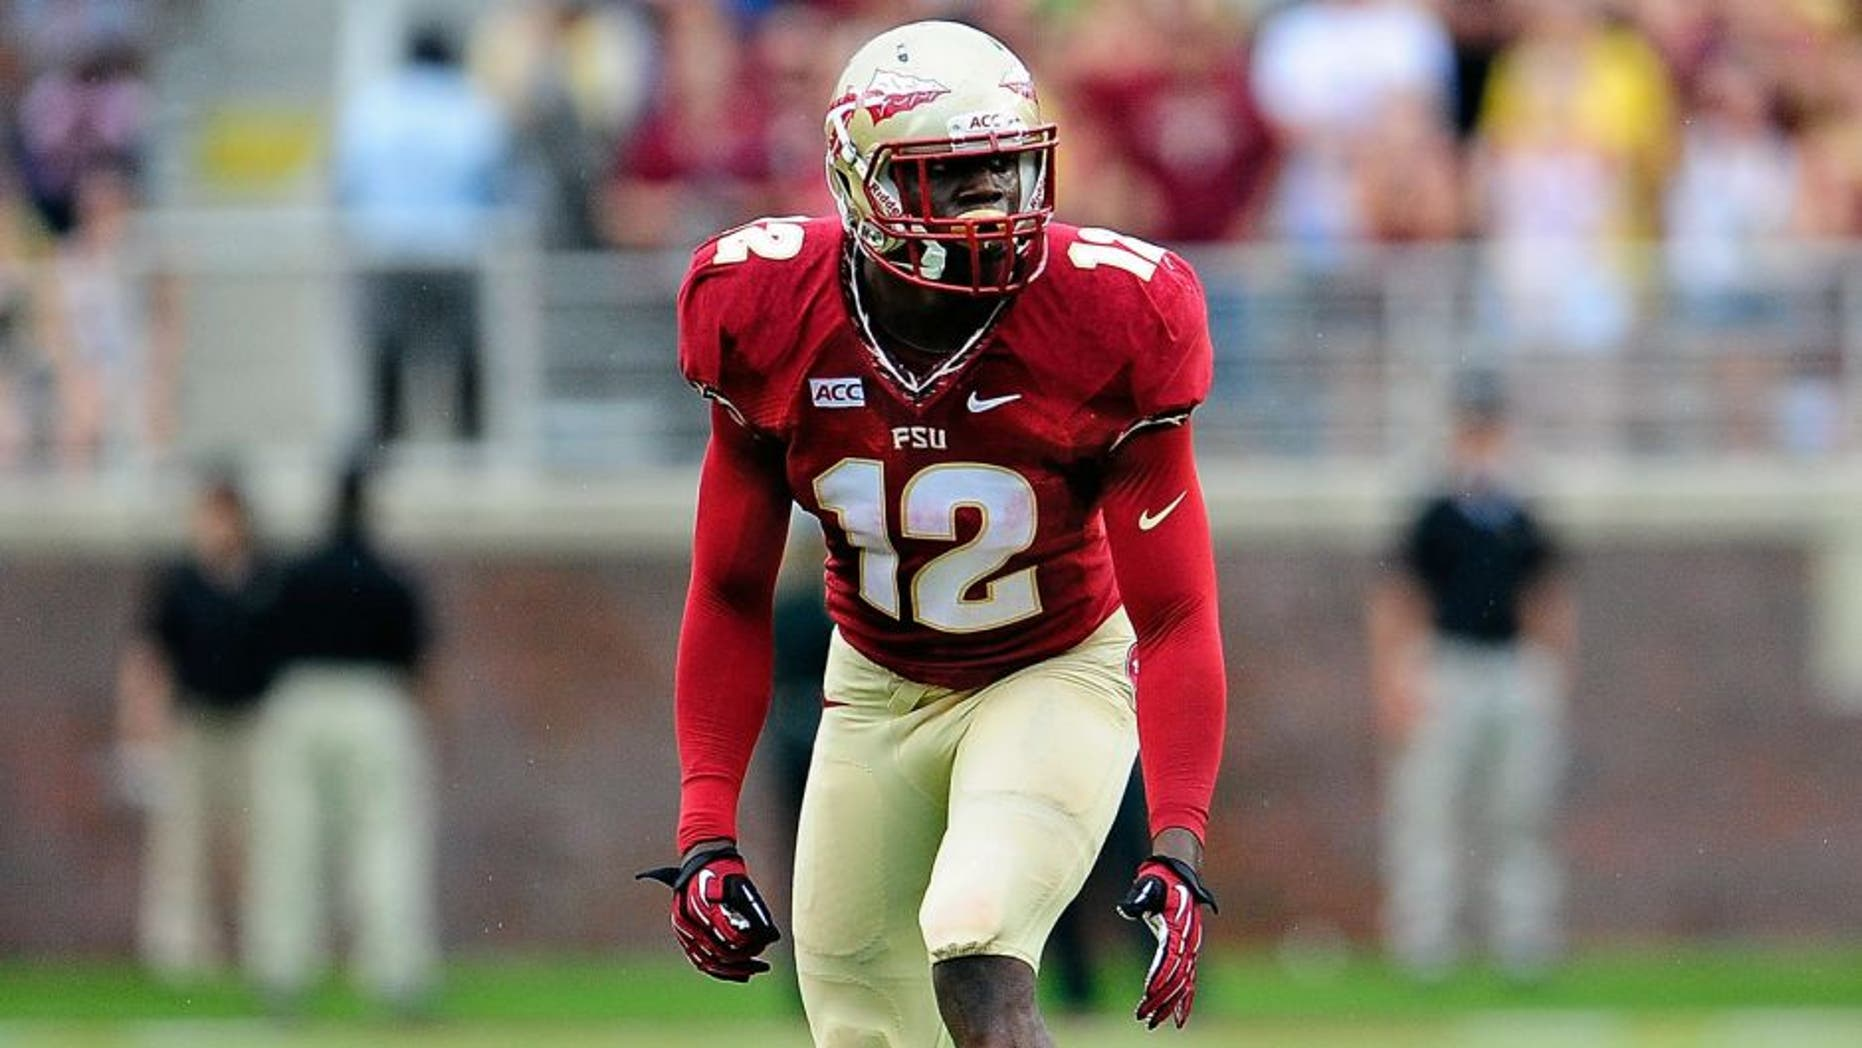 TALLAHASSEE, FL - SEPTEMBER 21: Matthew Thomas #12 of the Florida State Seminoles prepares for a play against the Bethune-Cookman Wildcats during a game at Doak Campbell Stadium on September 21, 2013 in Tallahassee, Florida. Florida State won the game 54-6. (Photo by Stacy Revere/Getty Images)